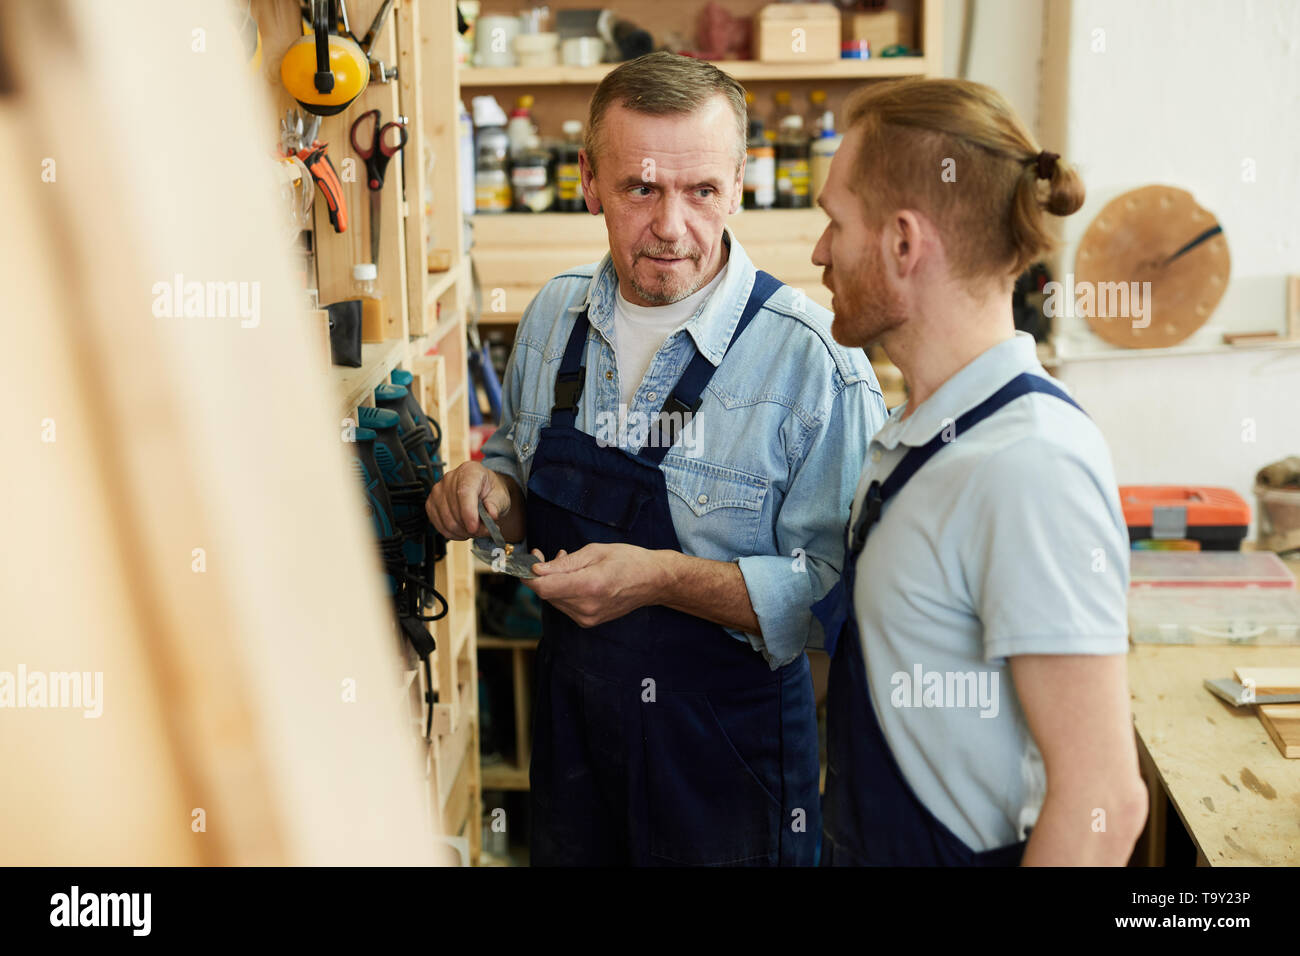 Portrait of senior carpenter talking to young trainee while working in joinery workshop, copy space - Stock Image